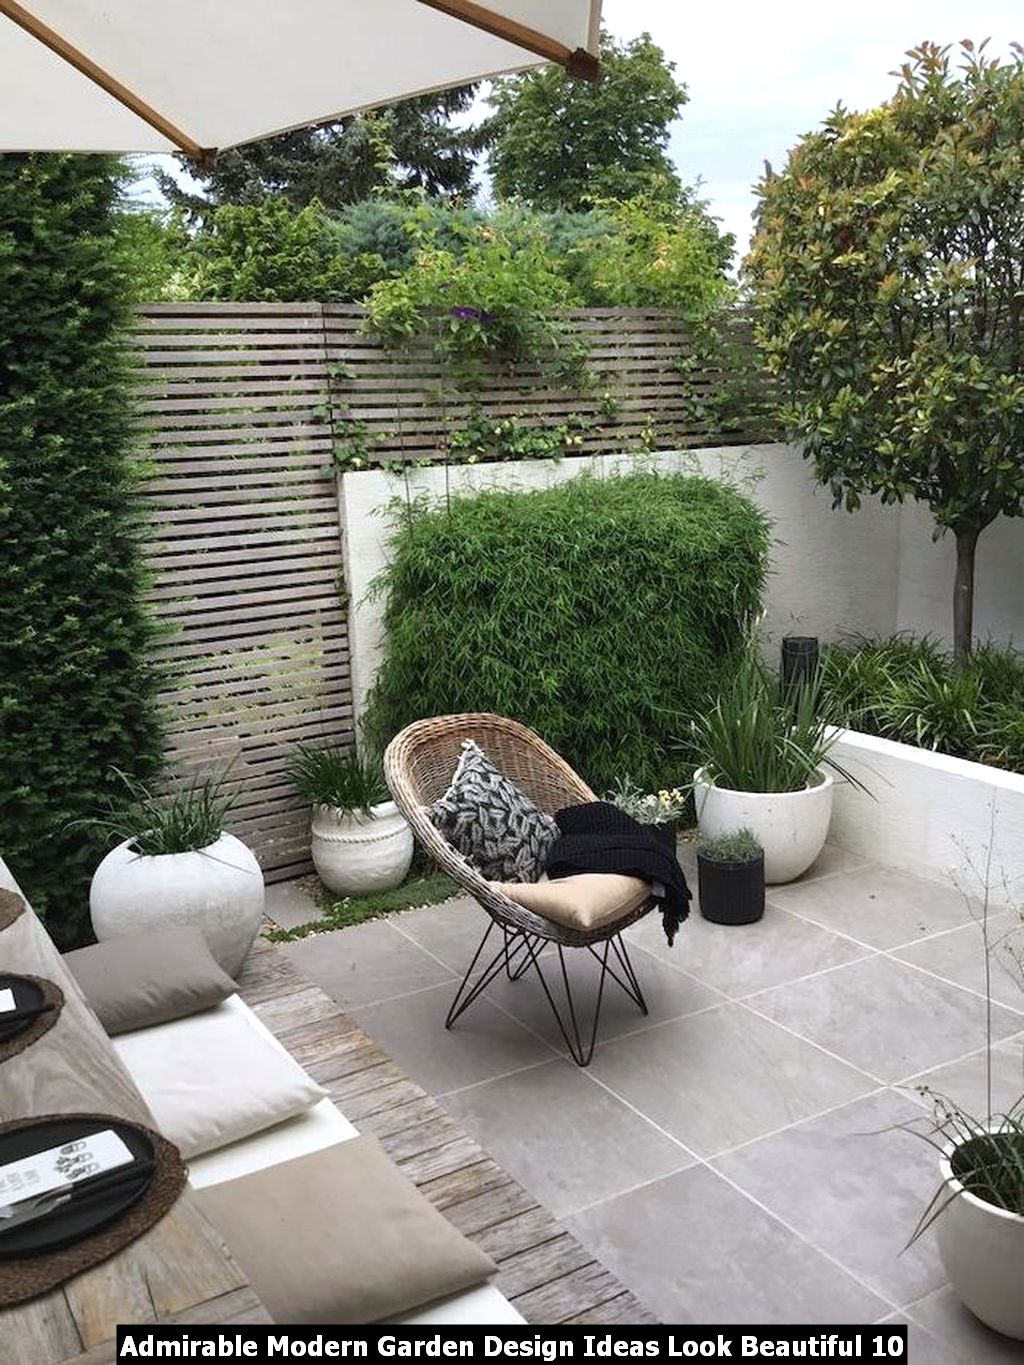 Admirable Modern Garden Design Ideas Look Beautiful 10